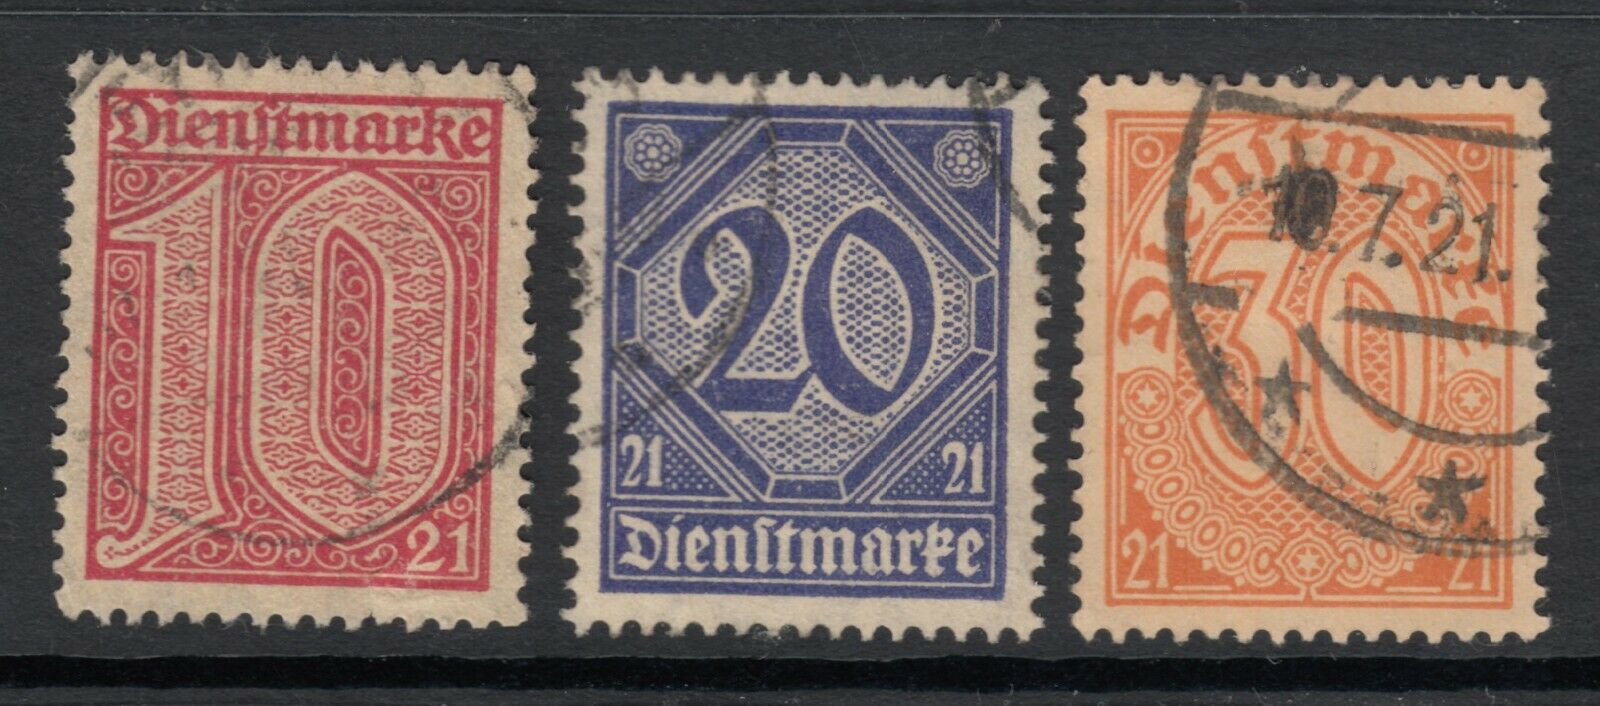 USED GERMAN LOCAL OFFICIALS FOR USE IN PRUSSIA OL10/OL12-13 CV 4.30 - $2.95